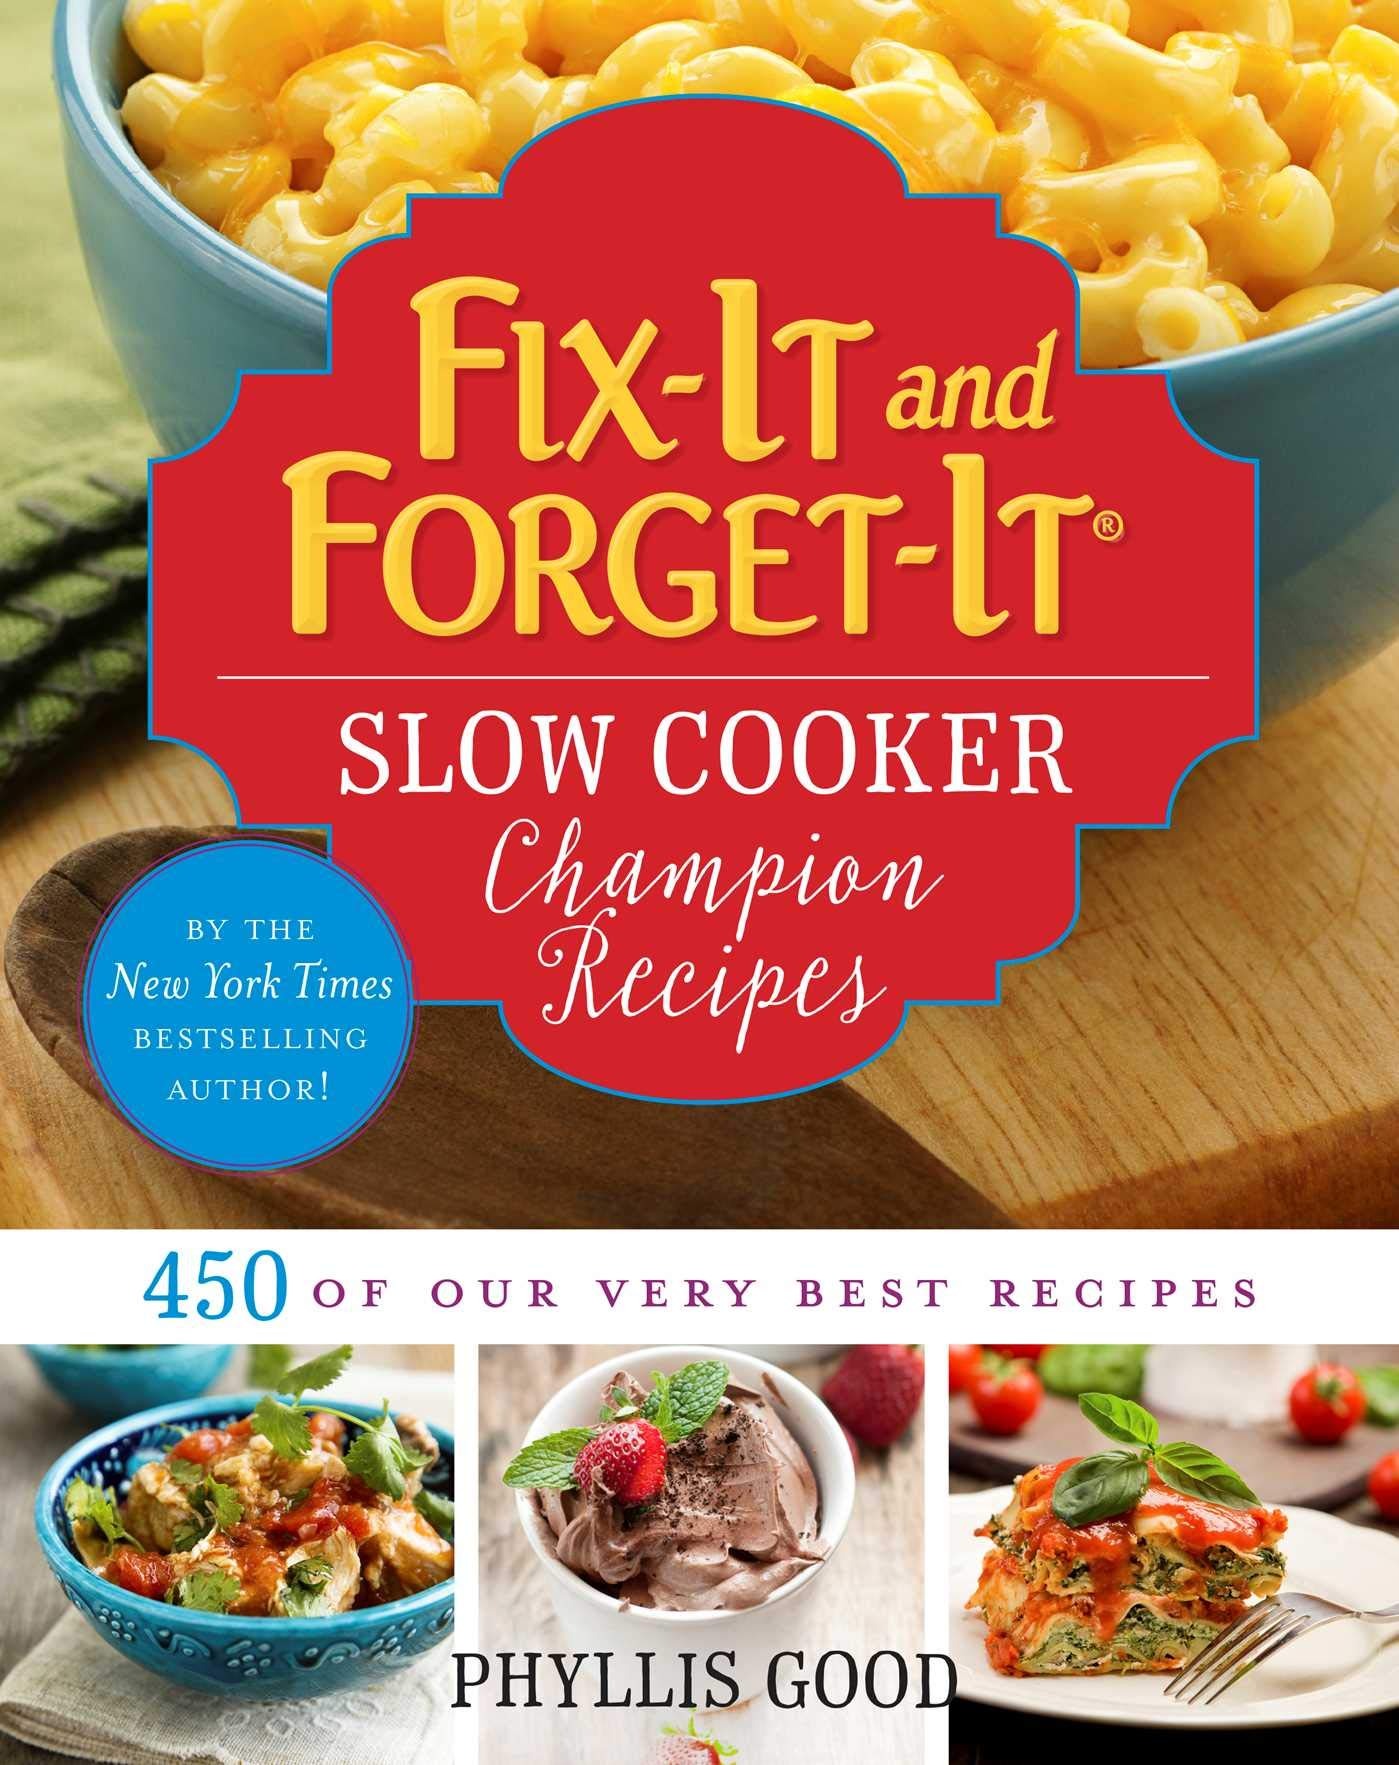 Fix-It and Forget-It Slow Cooker Champion Recipes: 450 of Our Very Best  Recipes: Phyllis Good: 9781680991253: Amazon.com: Books